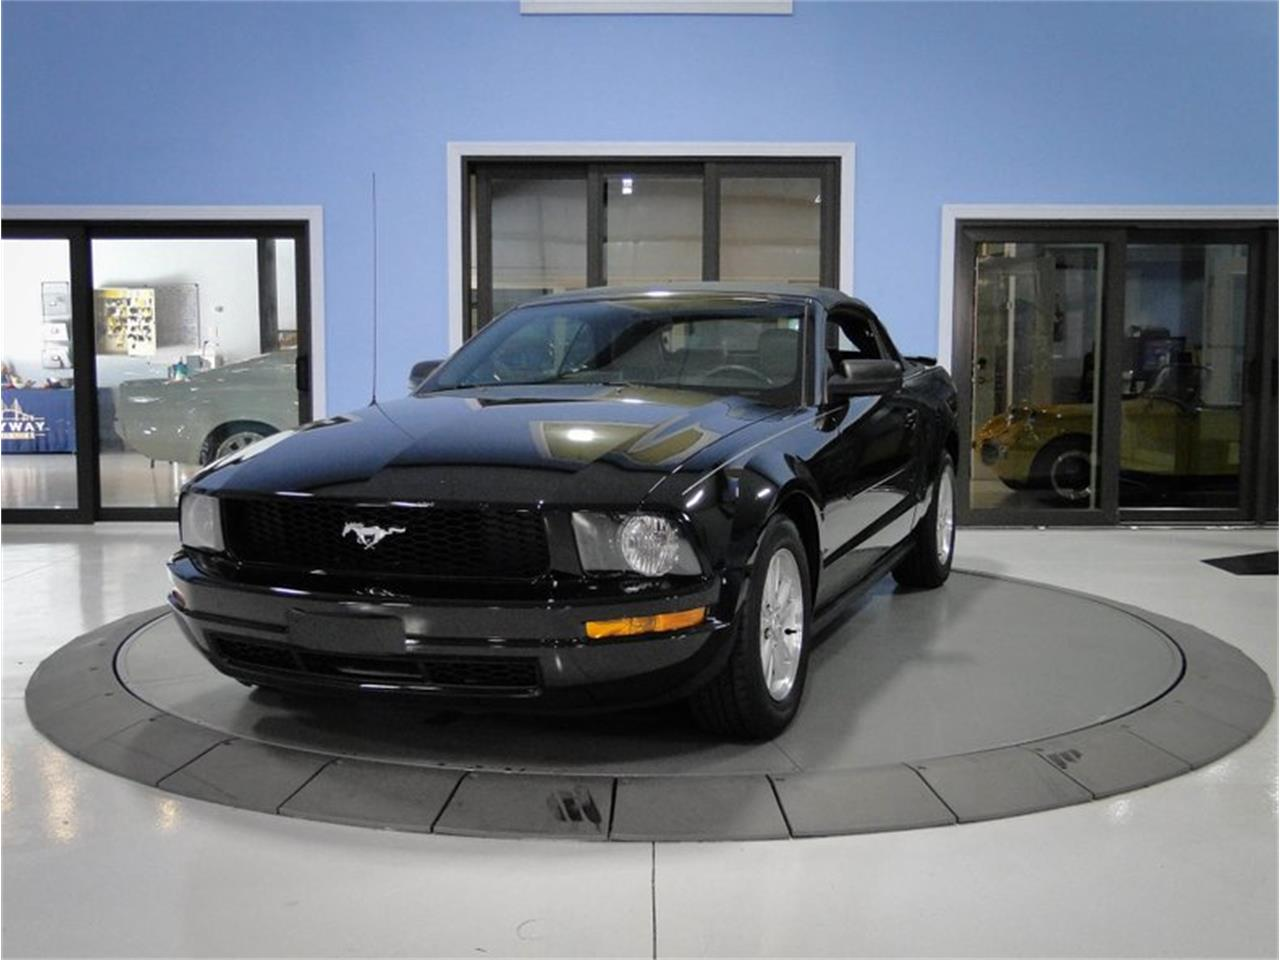 Large picture of 08 mustang p0cq